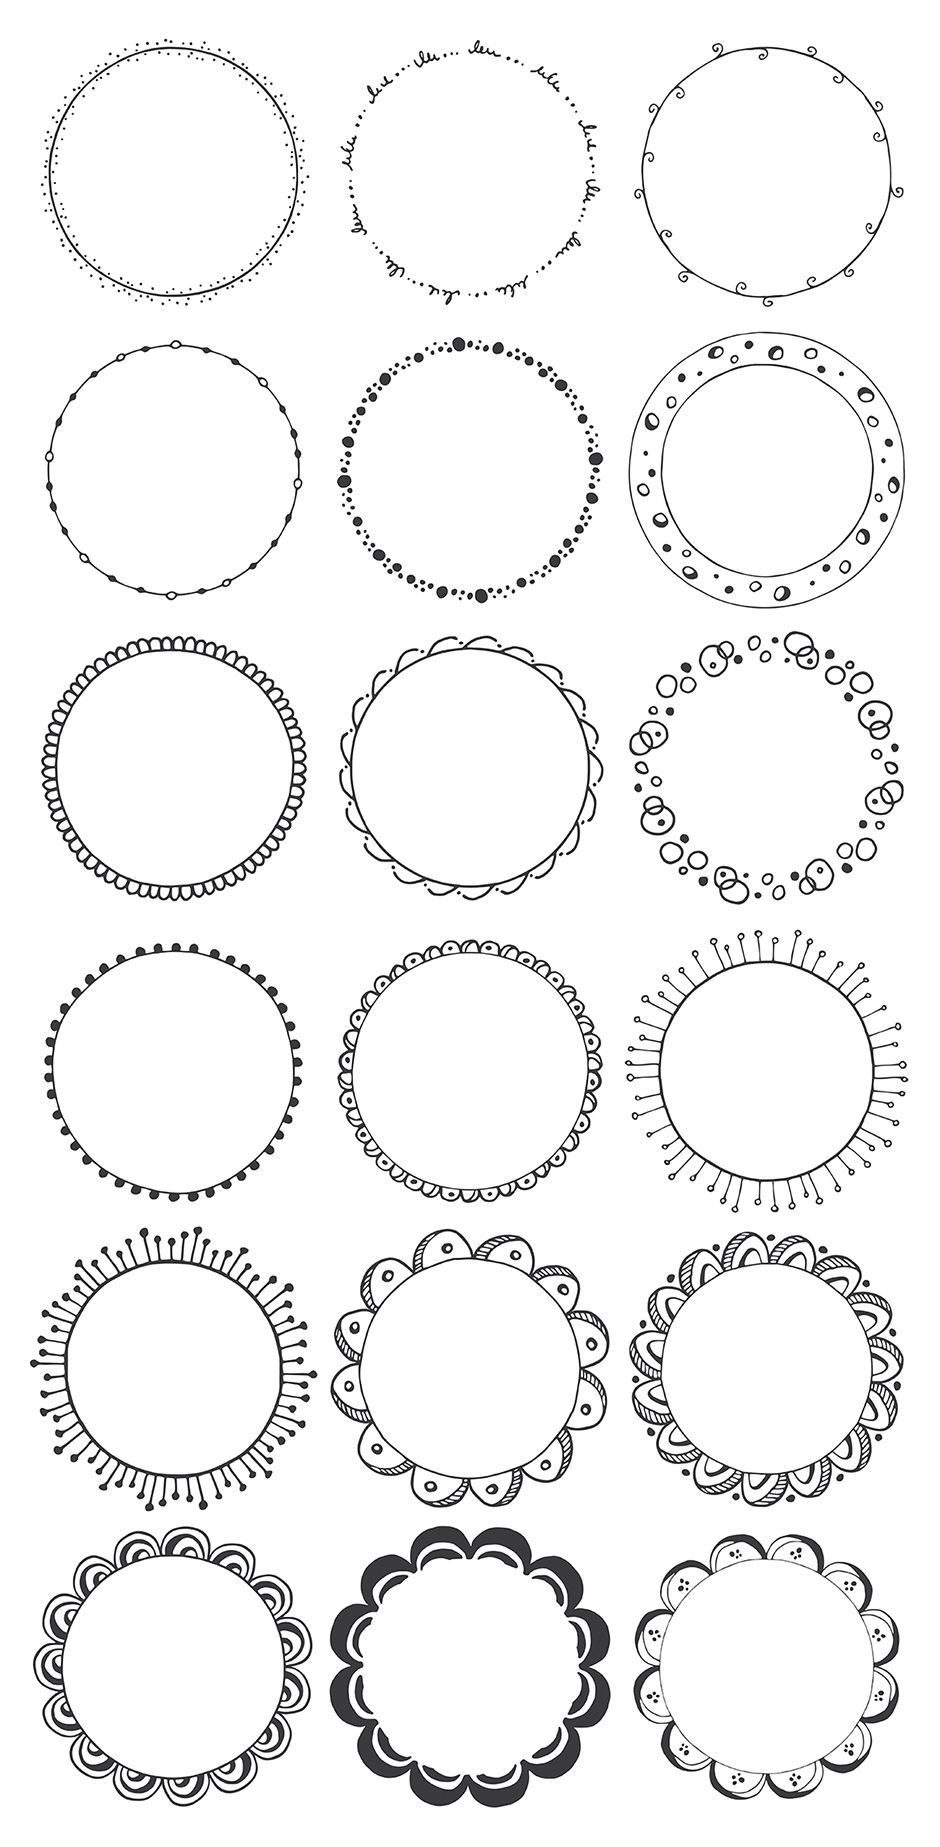 Beautiful Round Digital Frames To Decorate Your Work With Circle Clipart How To Draw Hands Circle Borders